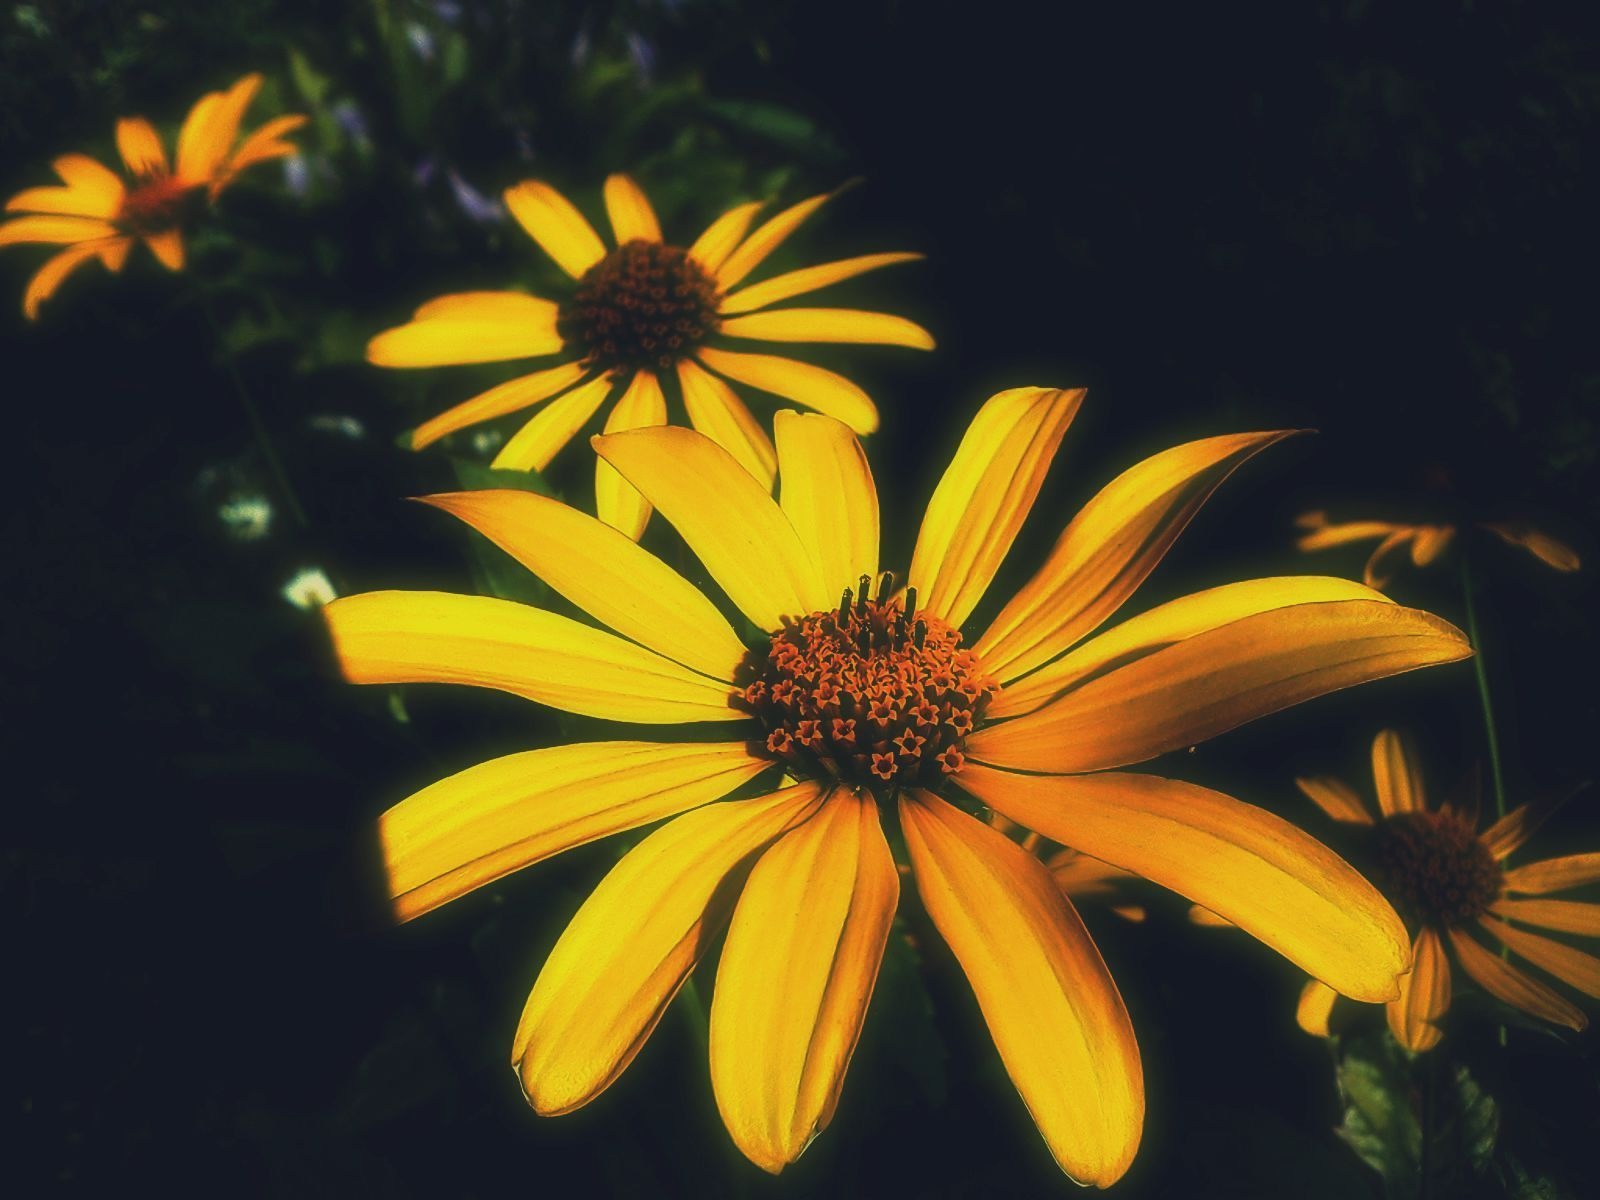 Yellow daisies in a strip of sunlight by natashaneit